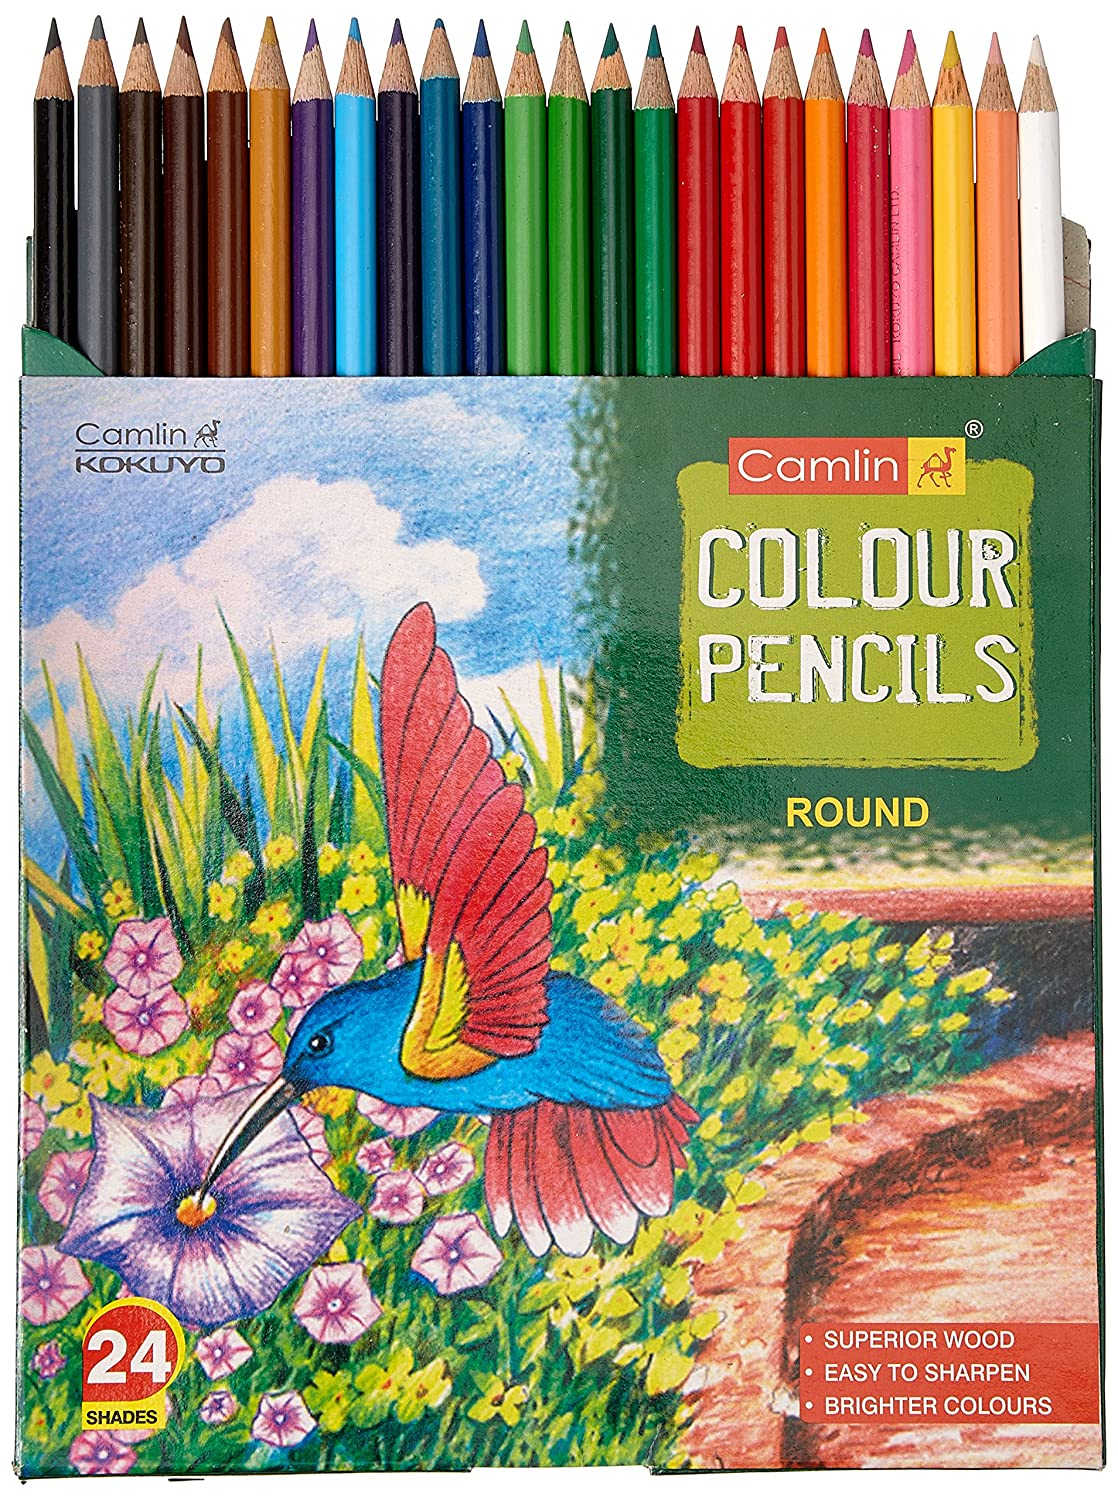 Camlin Colour Pencils Full Size - 24 Shades